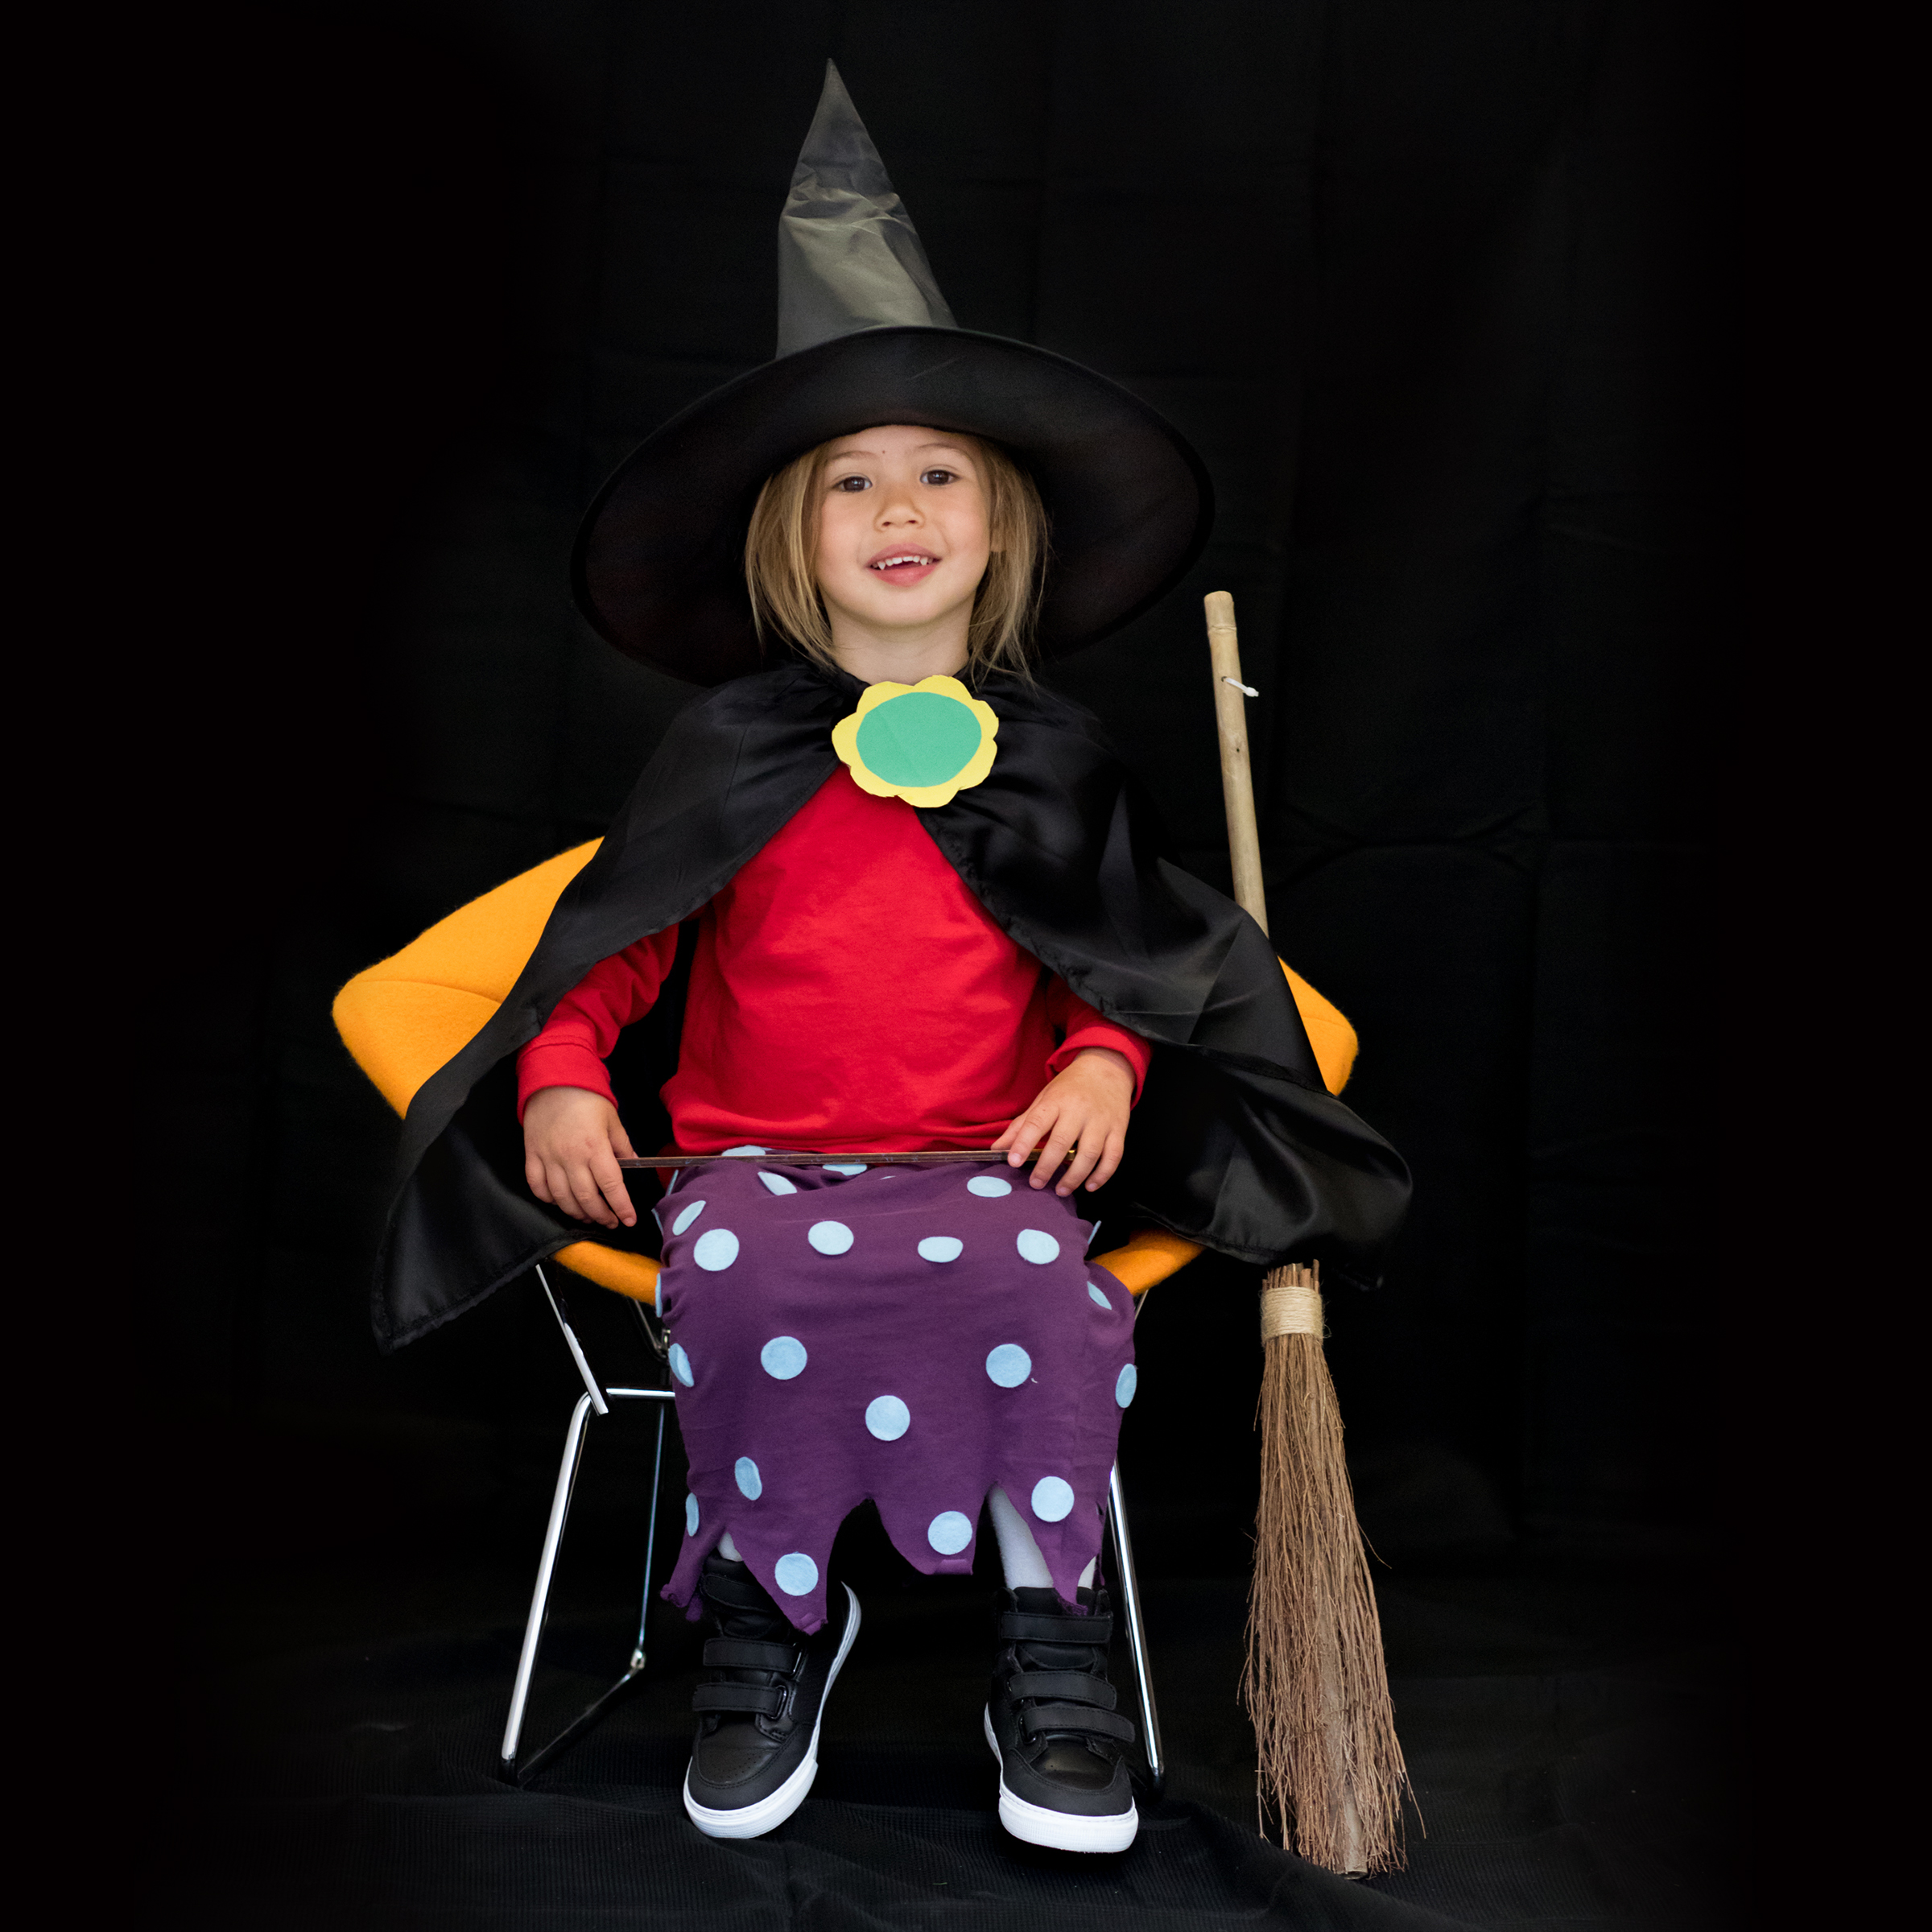 Colette, 4 years old Room on the Broom Witch